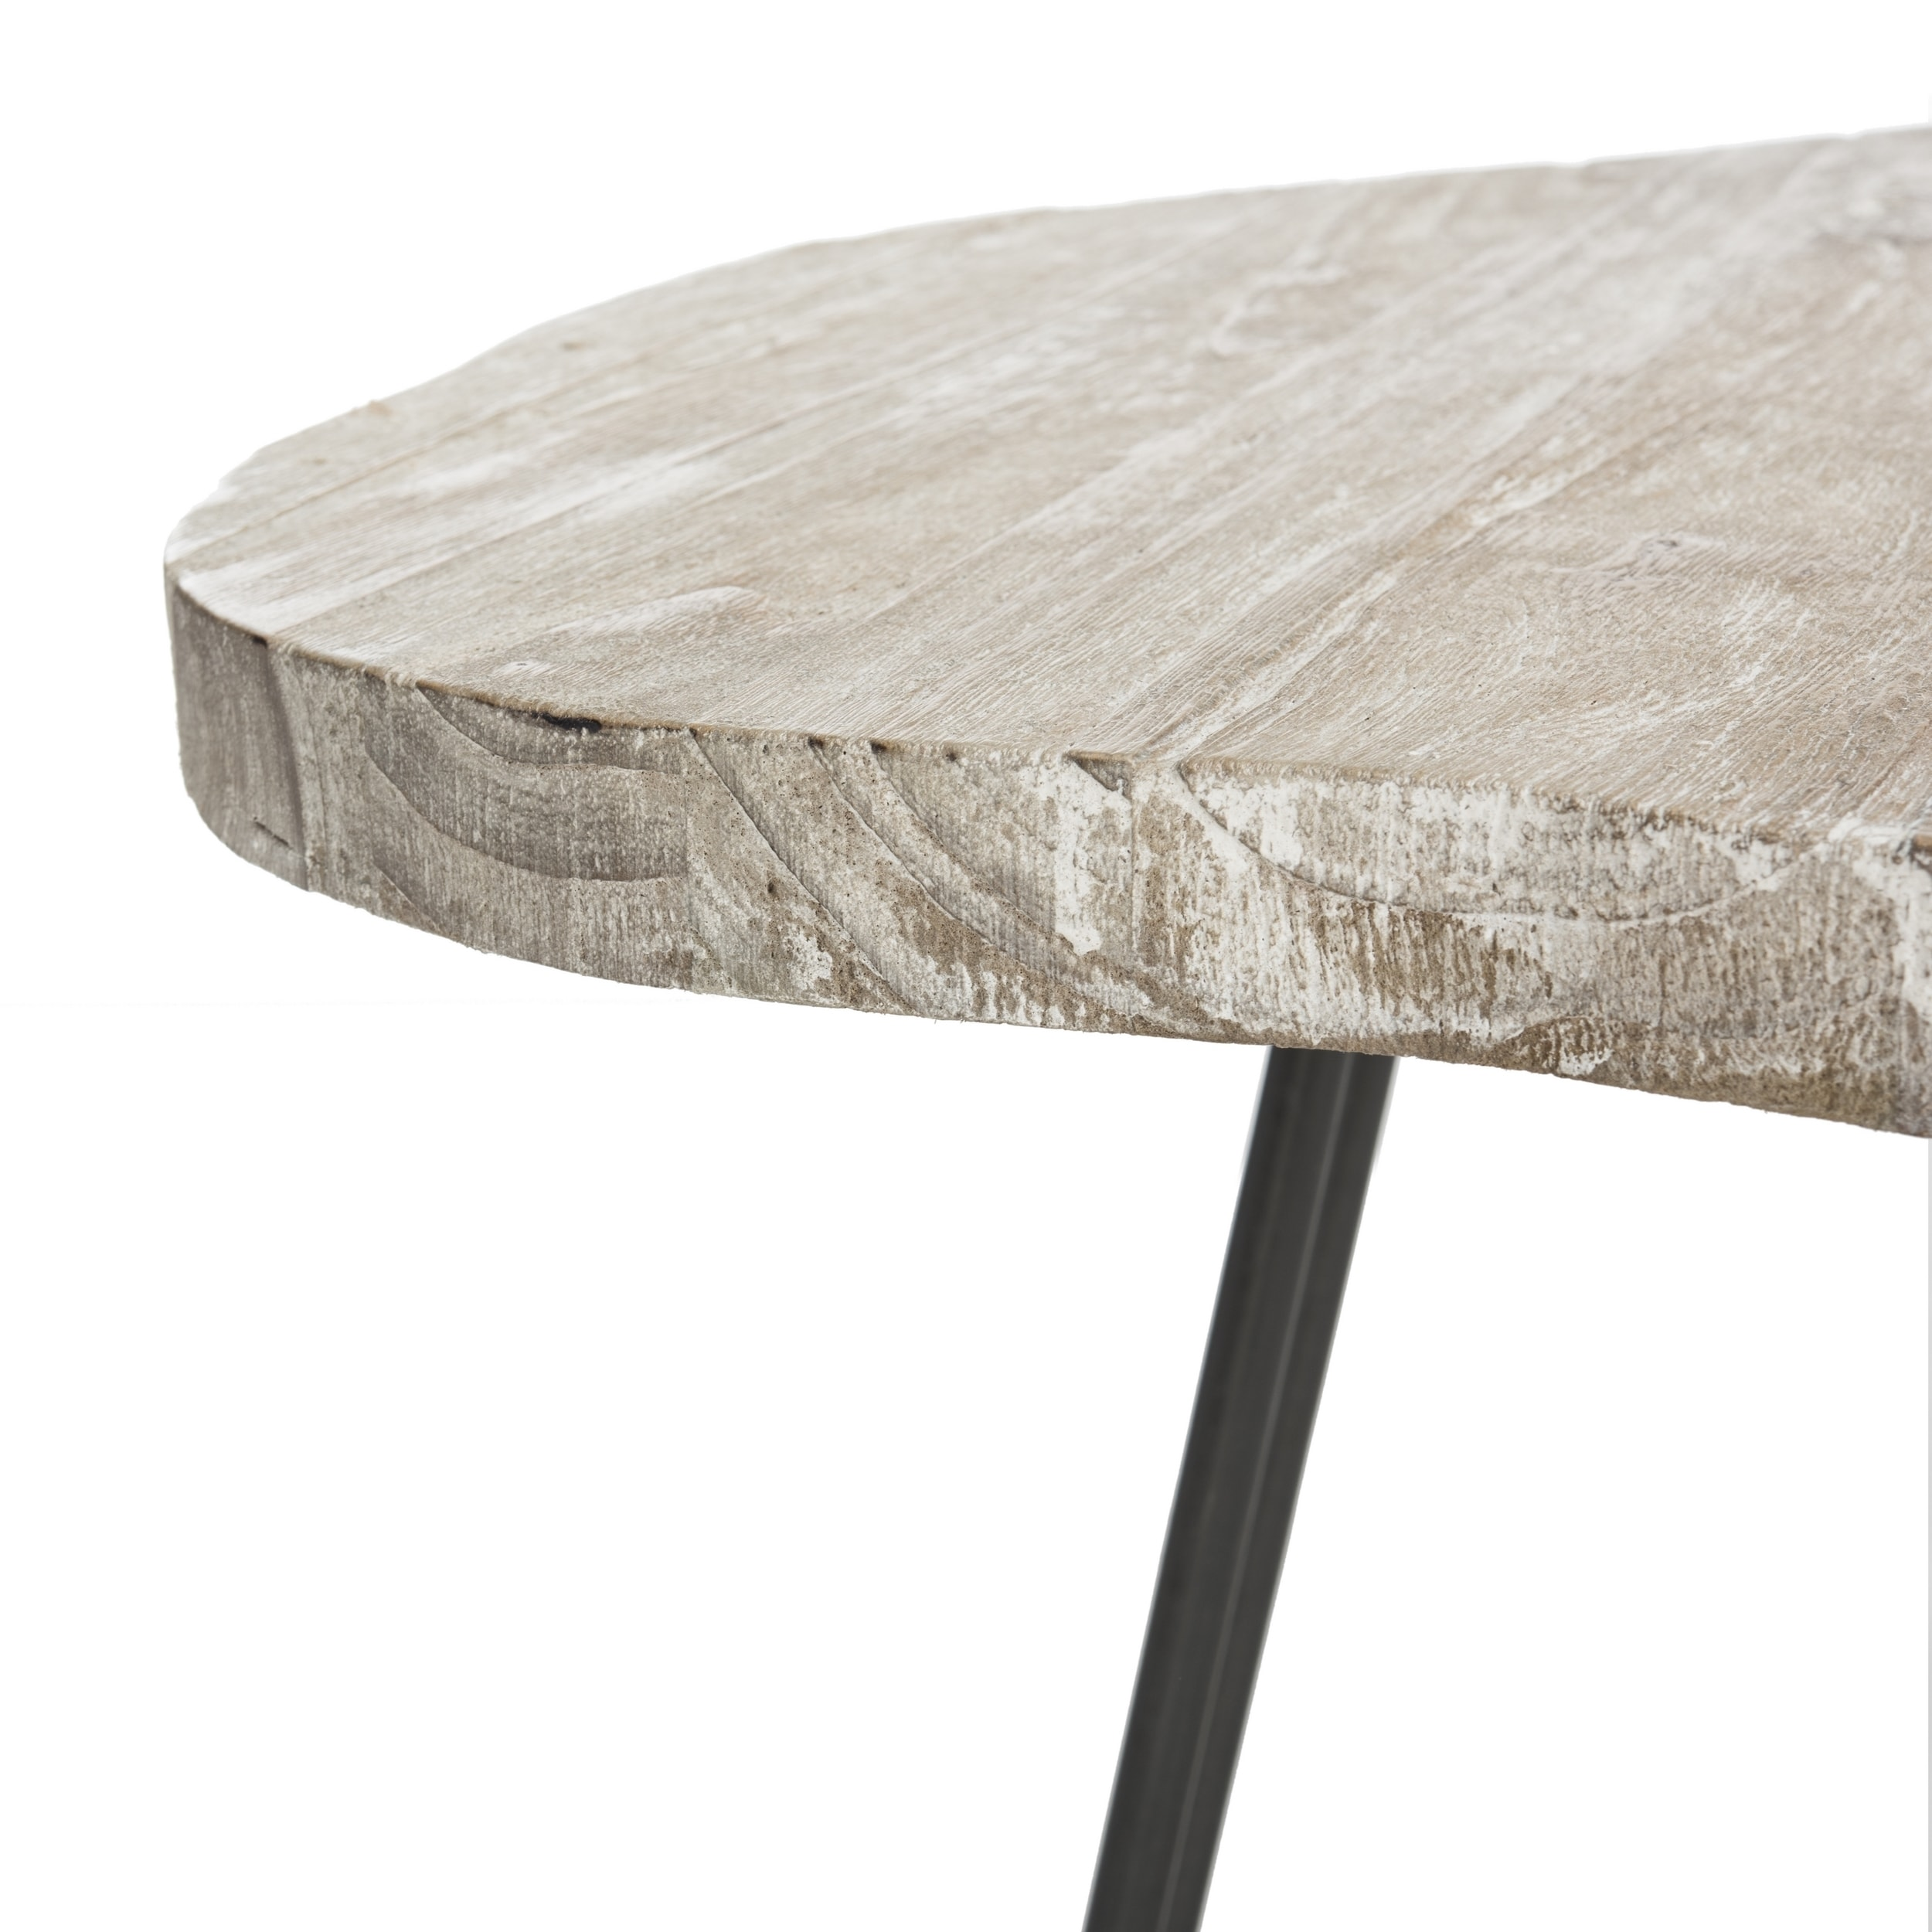 grey wash dining table. Safavieh Mindy Wood Top Grey / White Wash Dining Table - Free Shipping Today Overstock 20996170 E